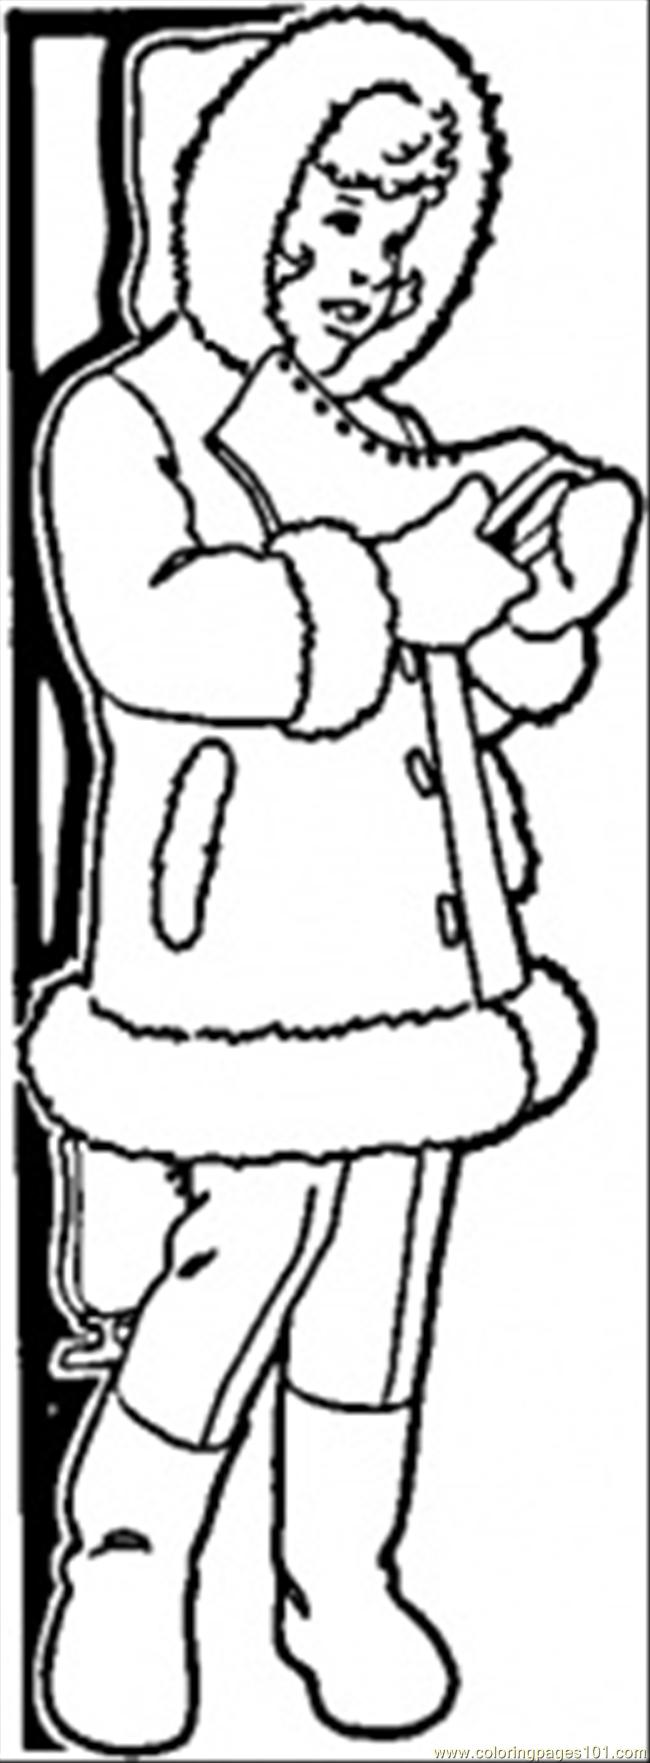 Warm Winter Coat Coloring Page